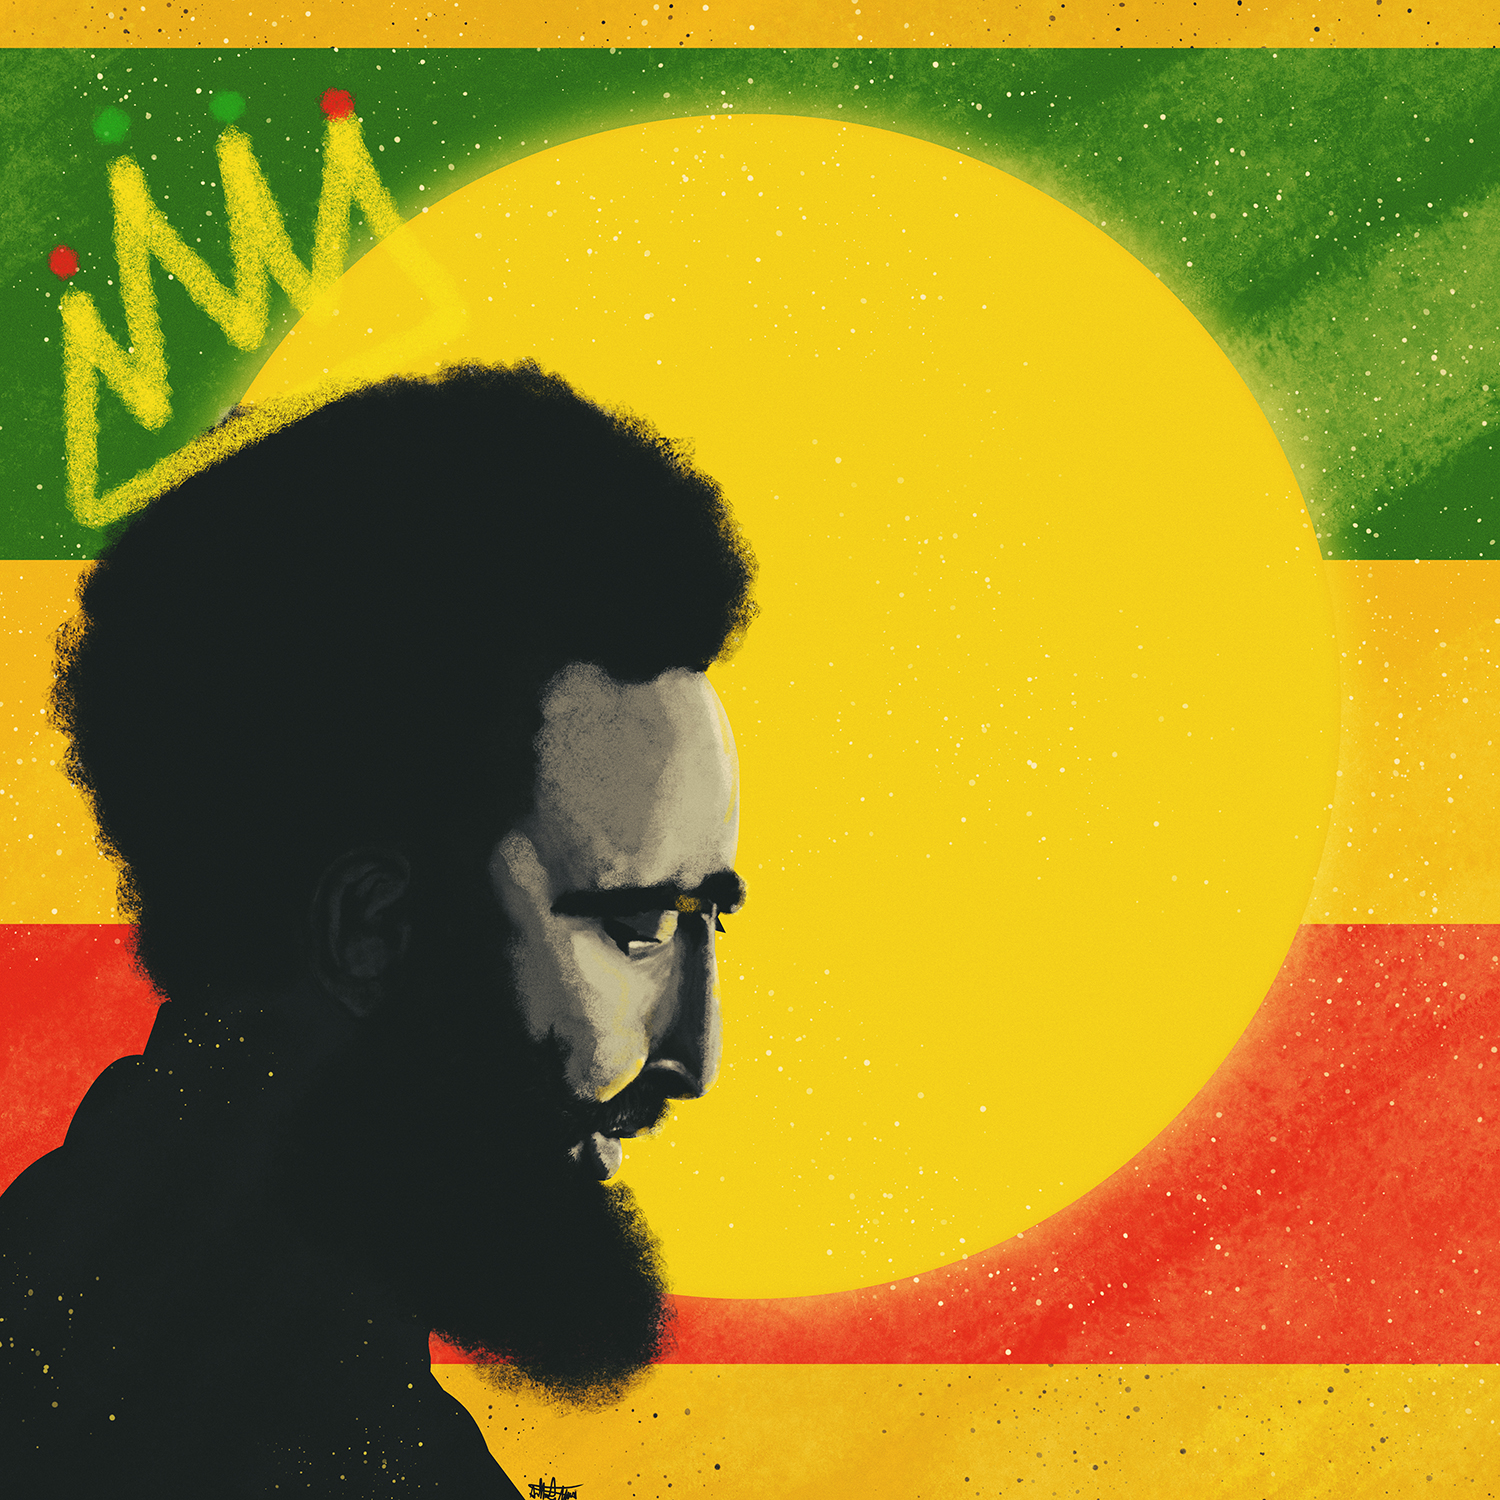 Royalty of Kush, Haile Selassie